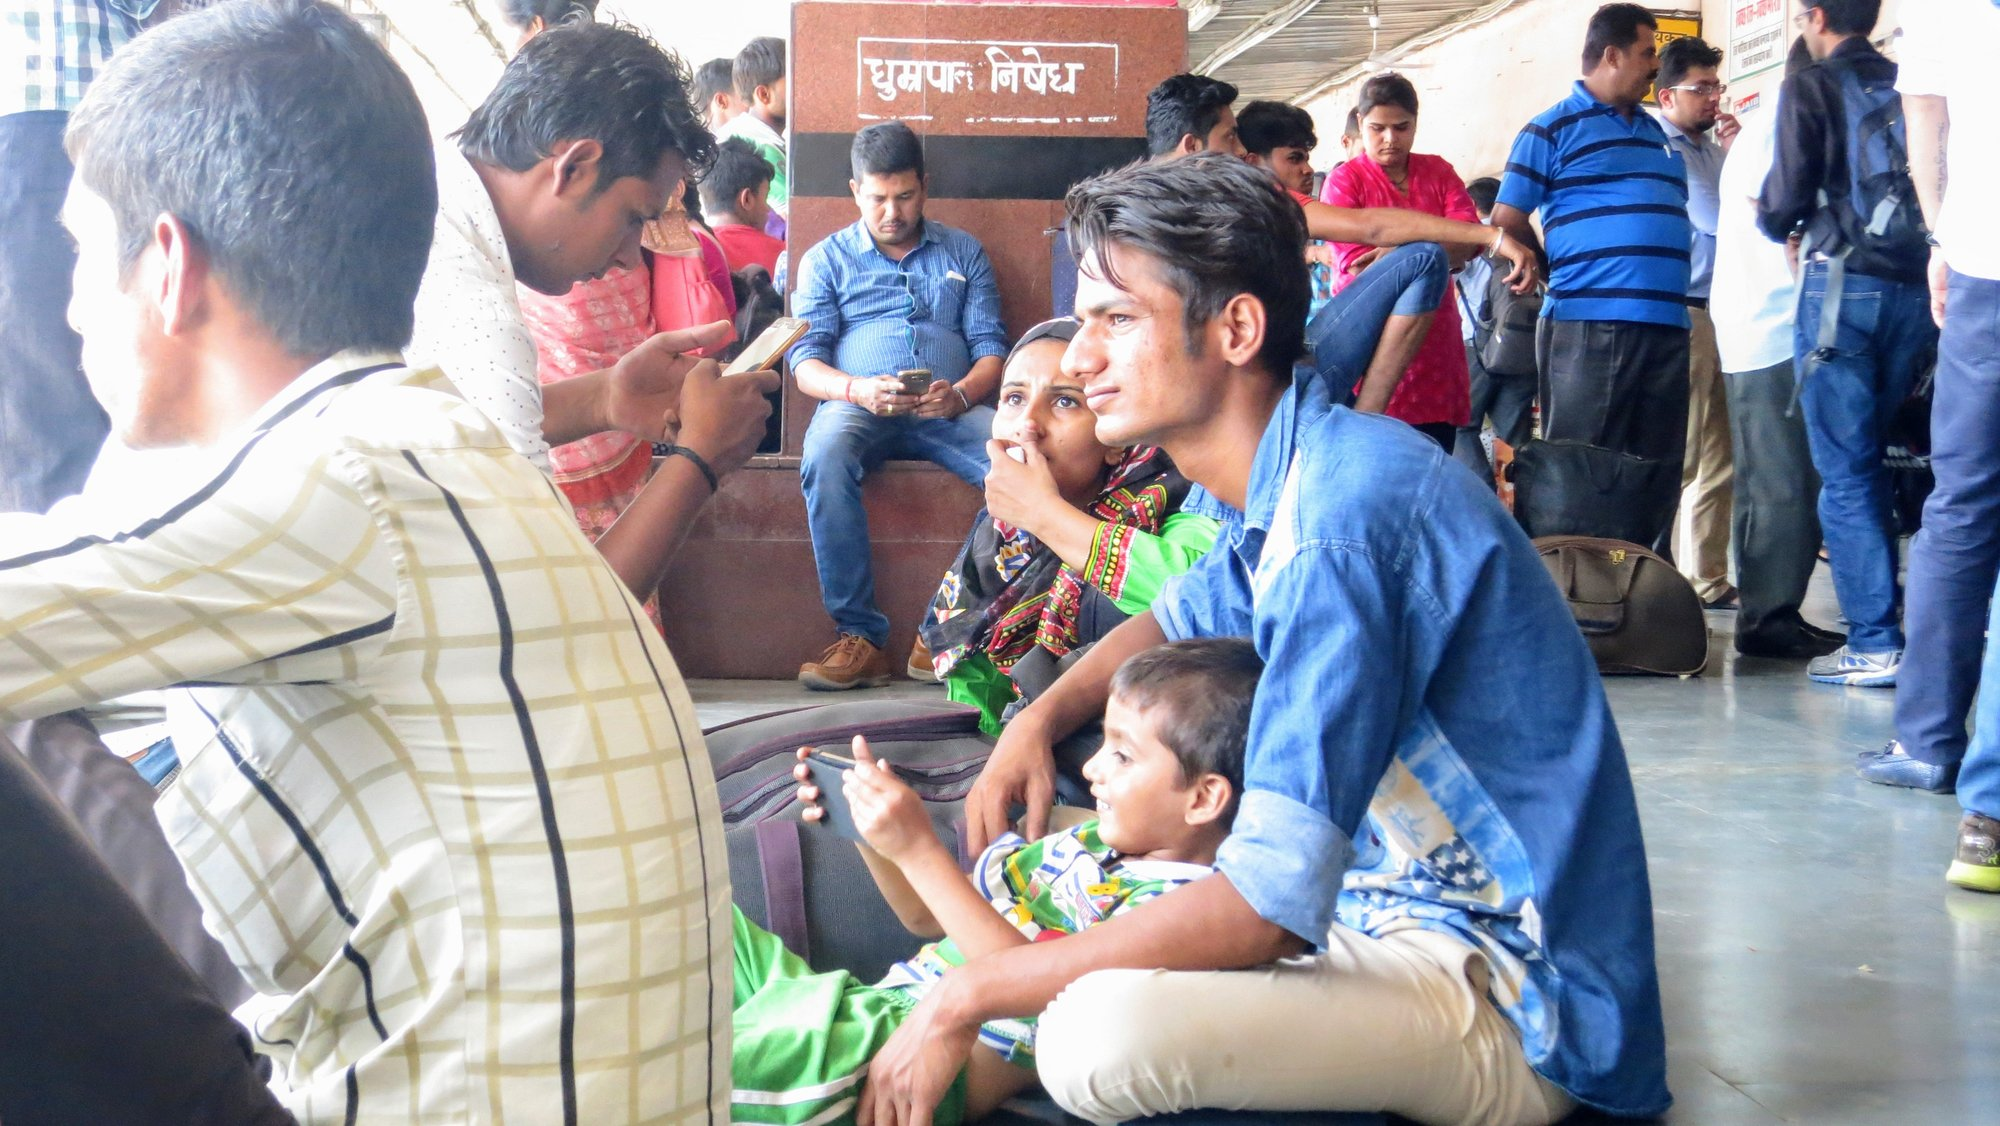 Family waiting at Jaipur station